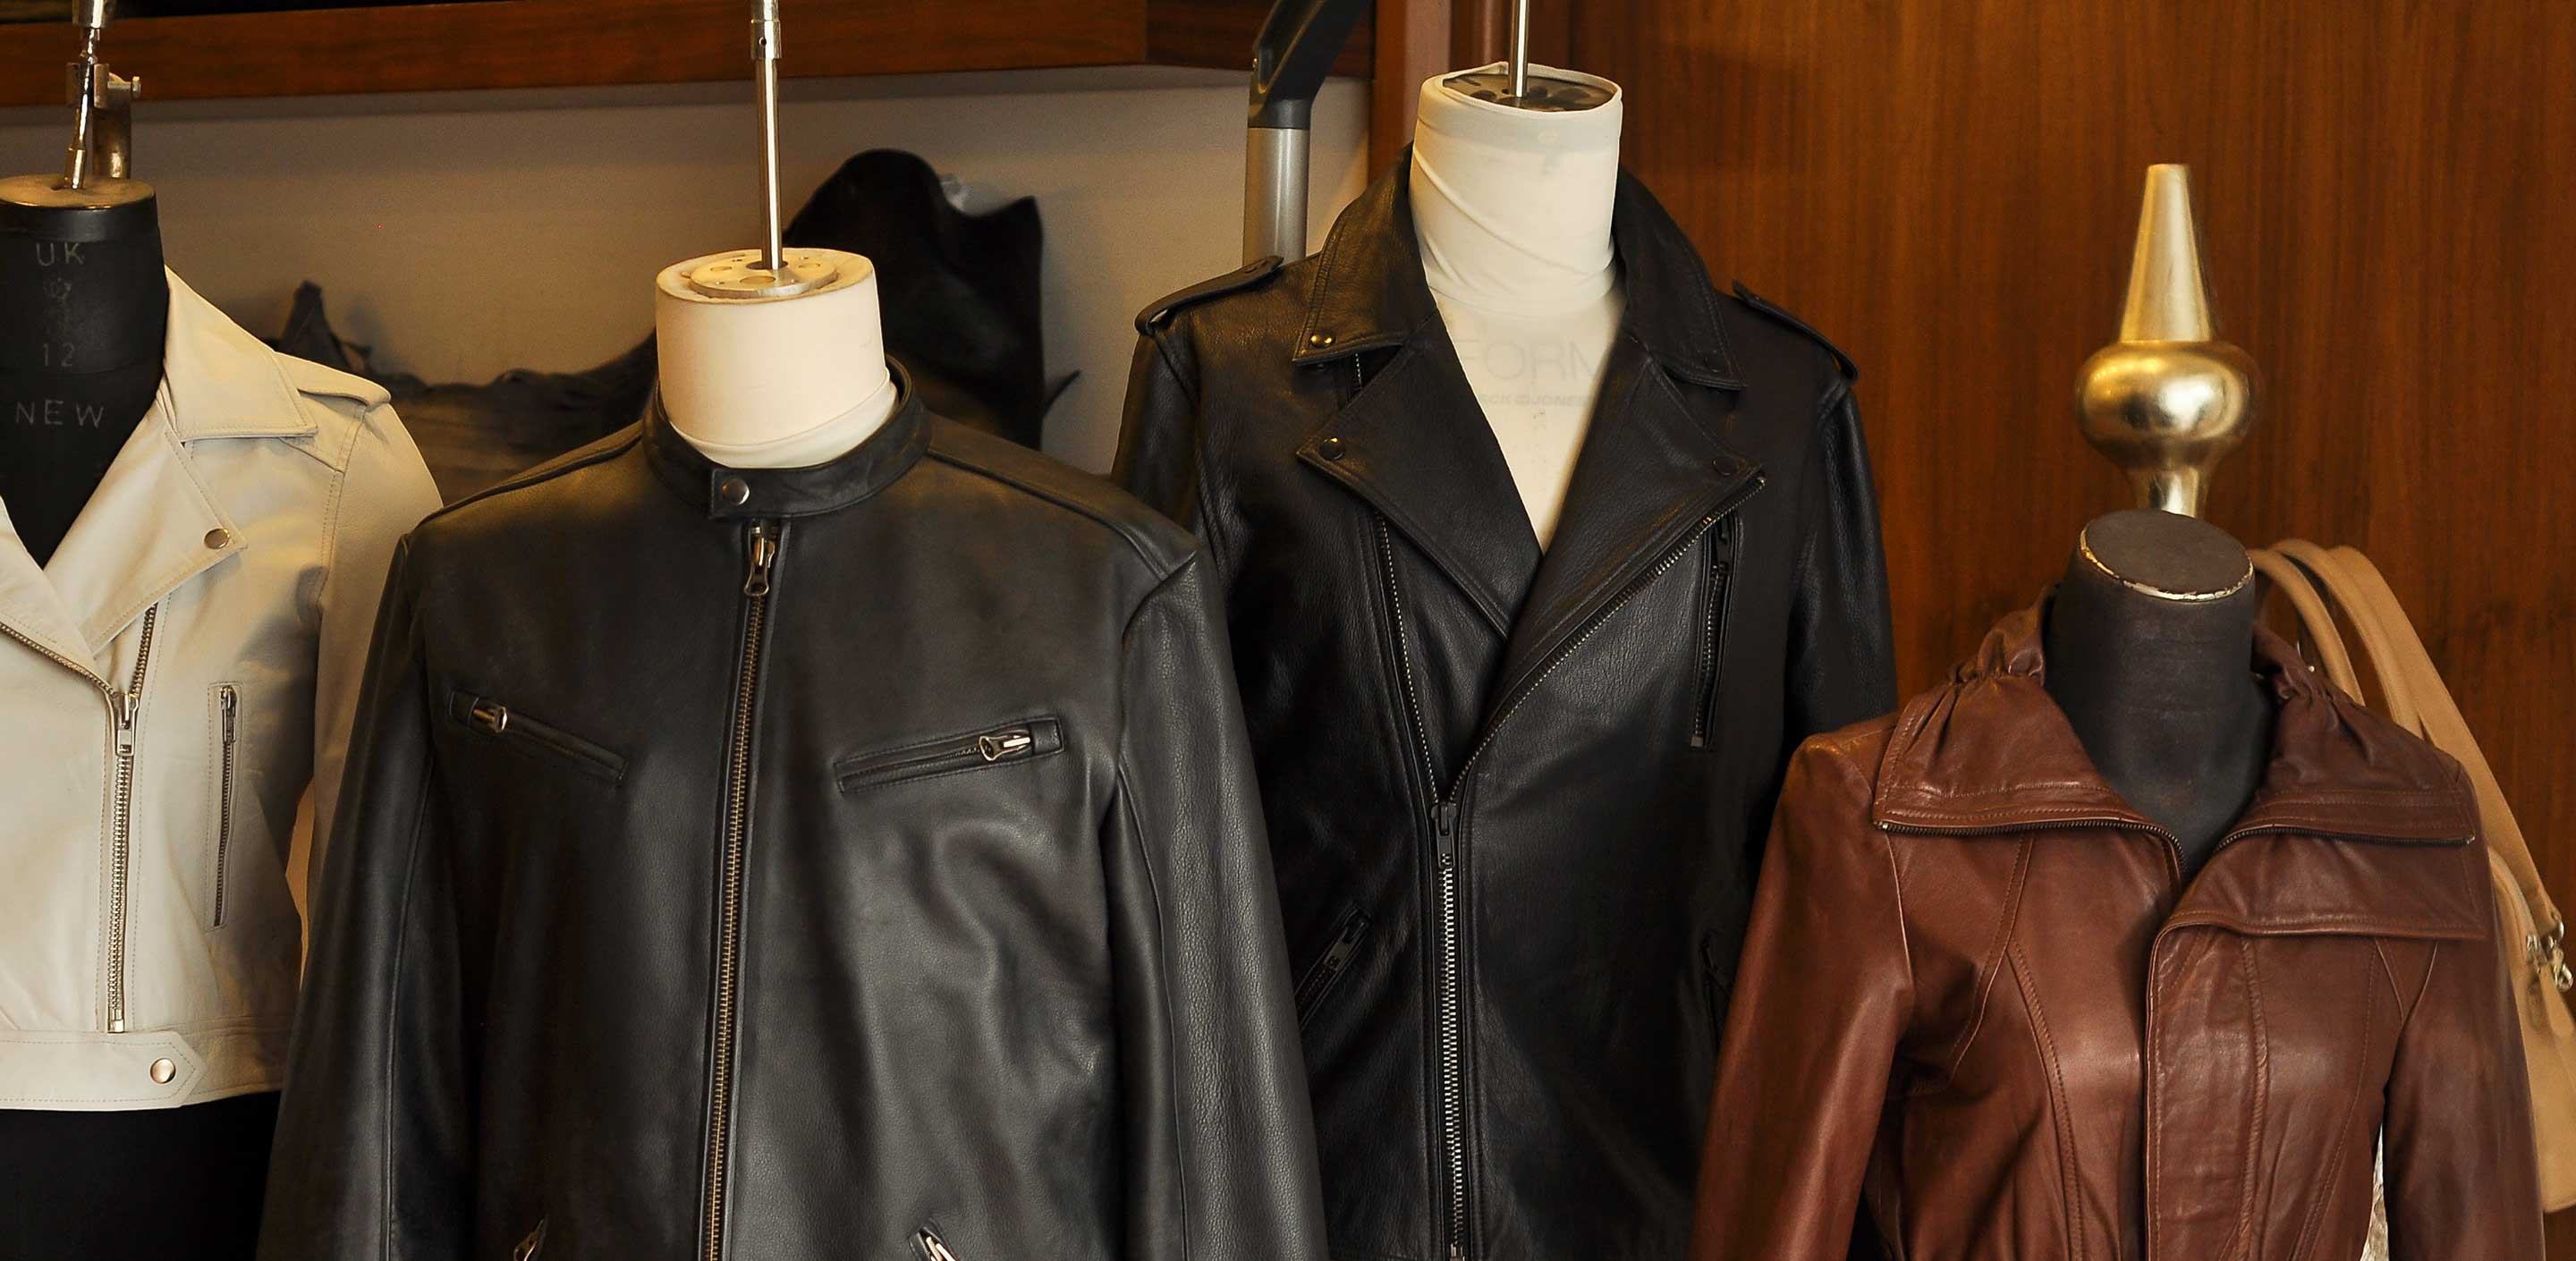 How to Remove Wrinkles from Leather Jackets?